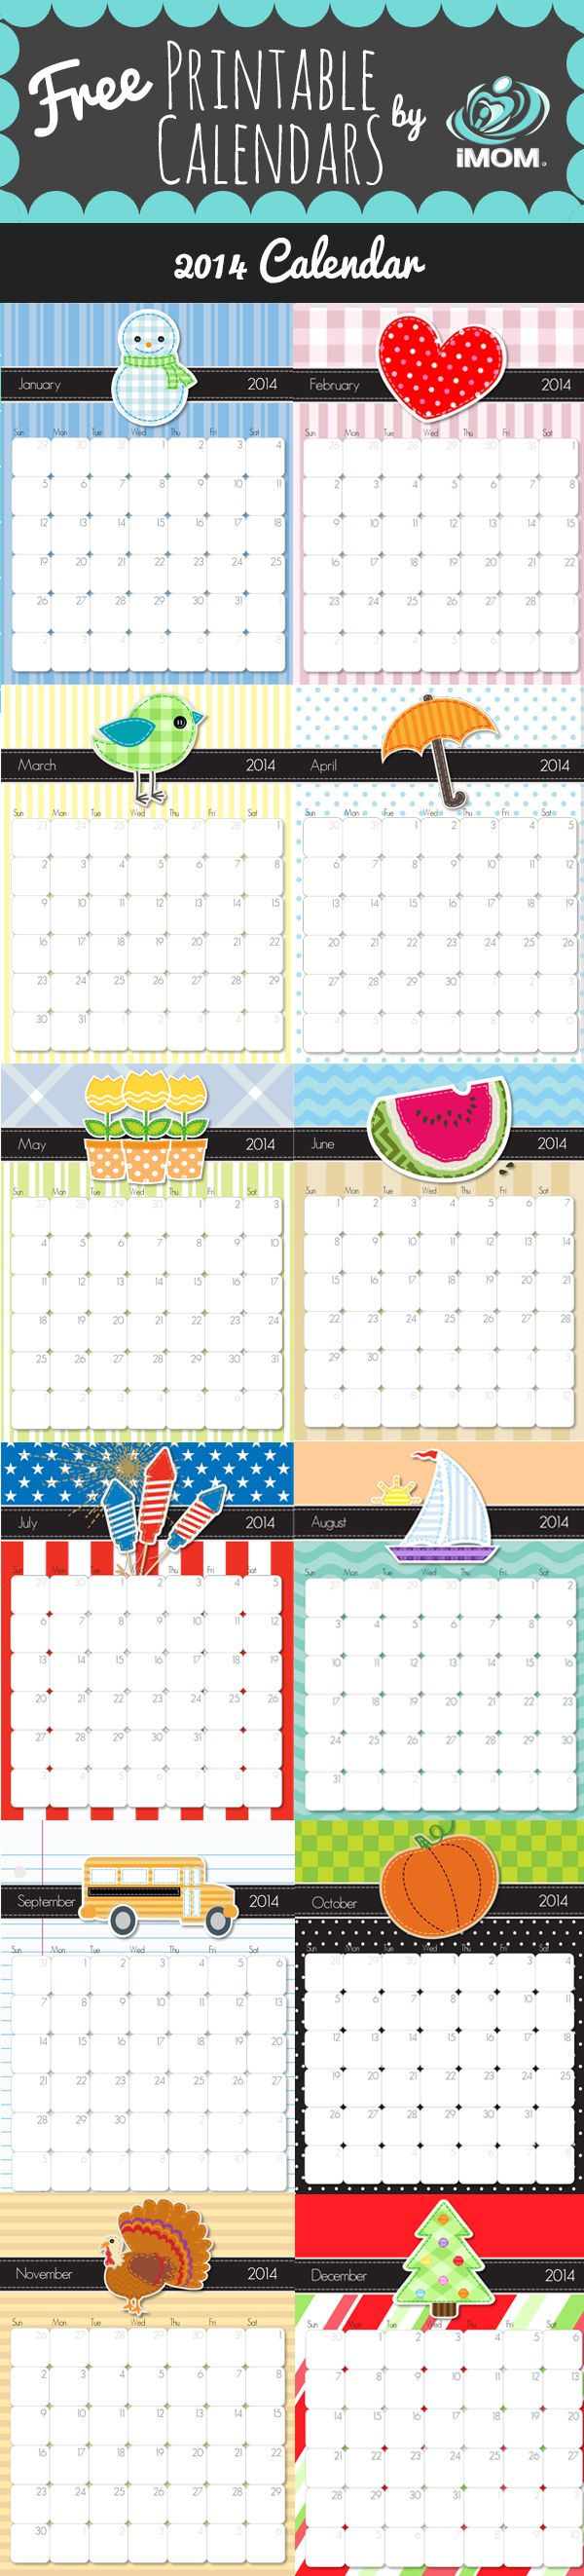 2014 Printable Calendars - Make sure to go to I mom.com for the new 2015 printable.